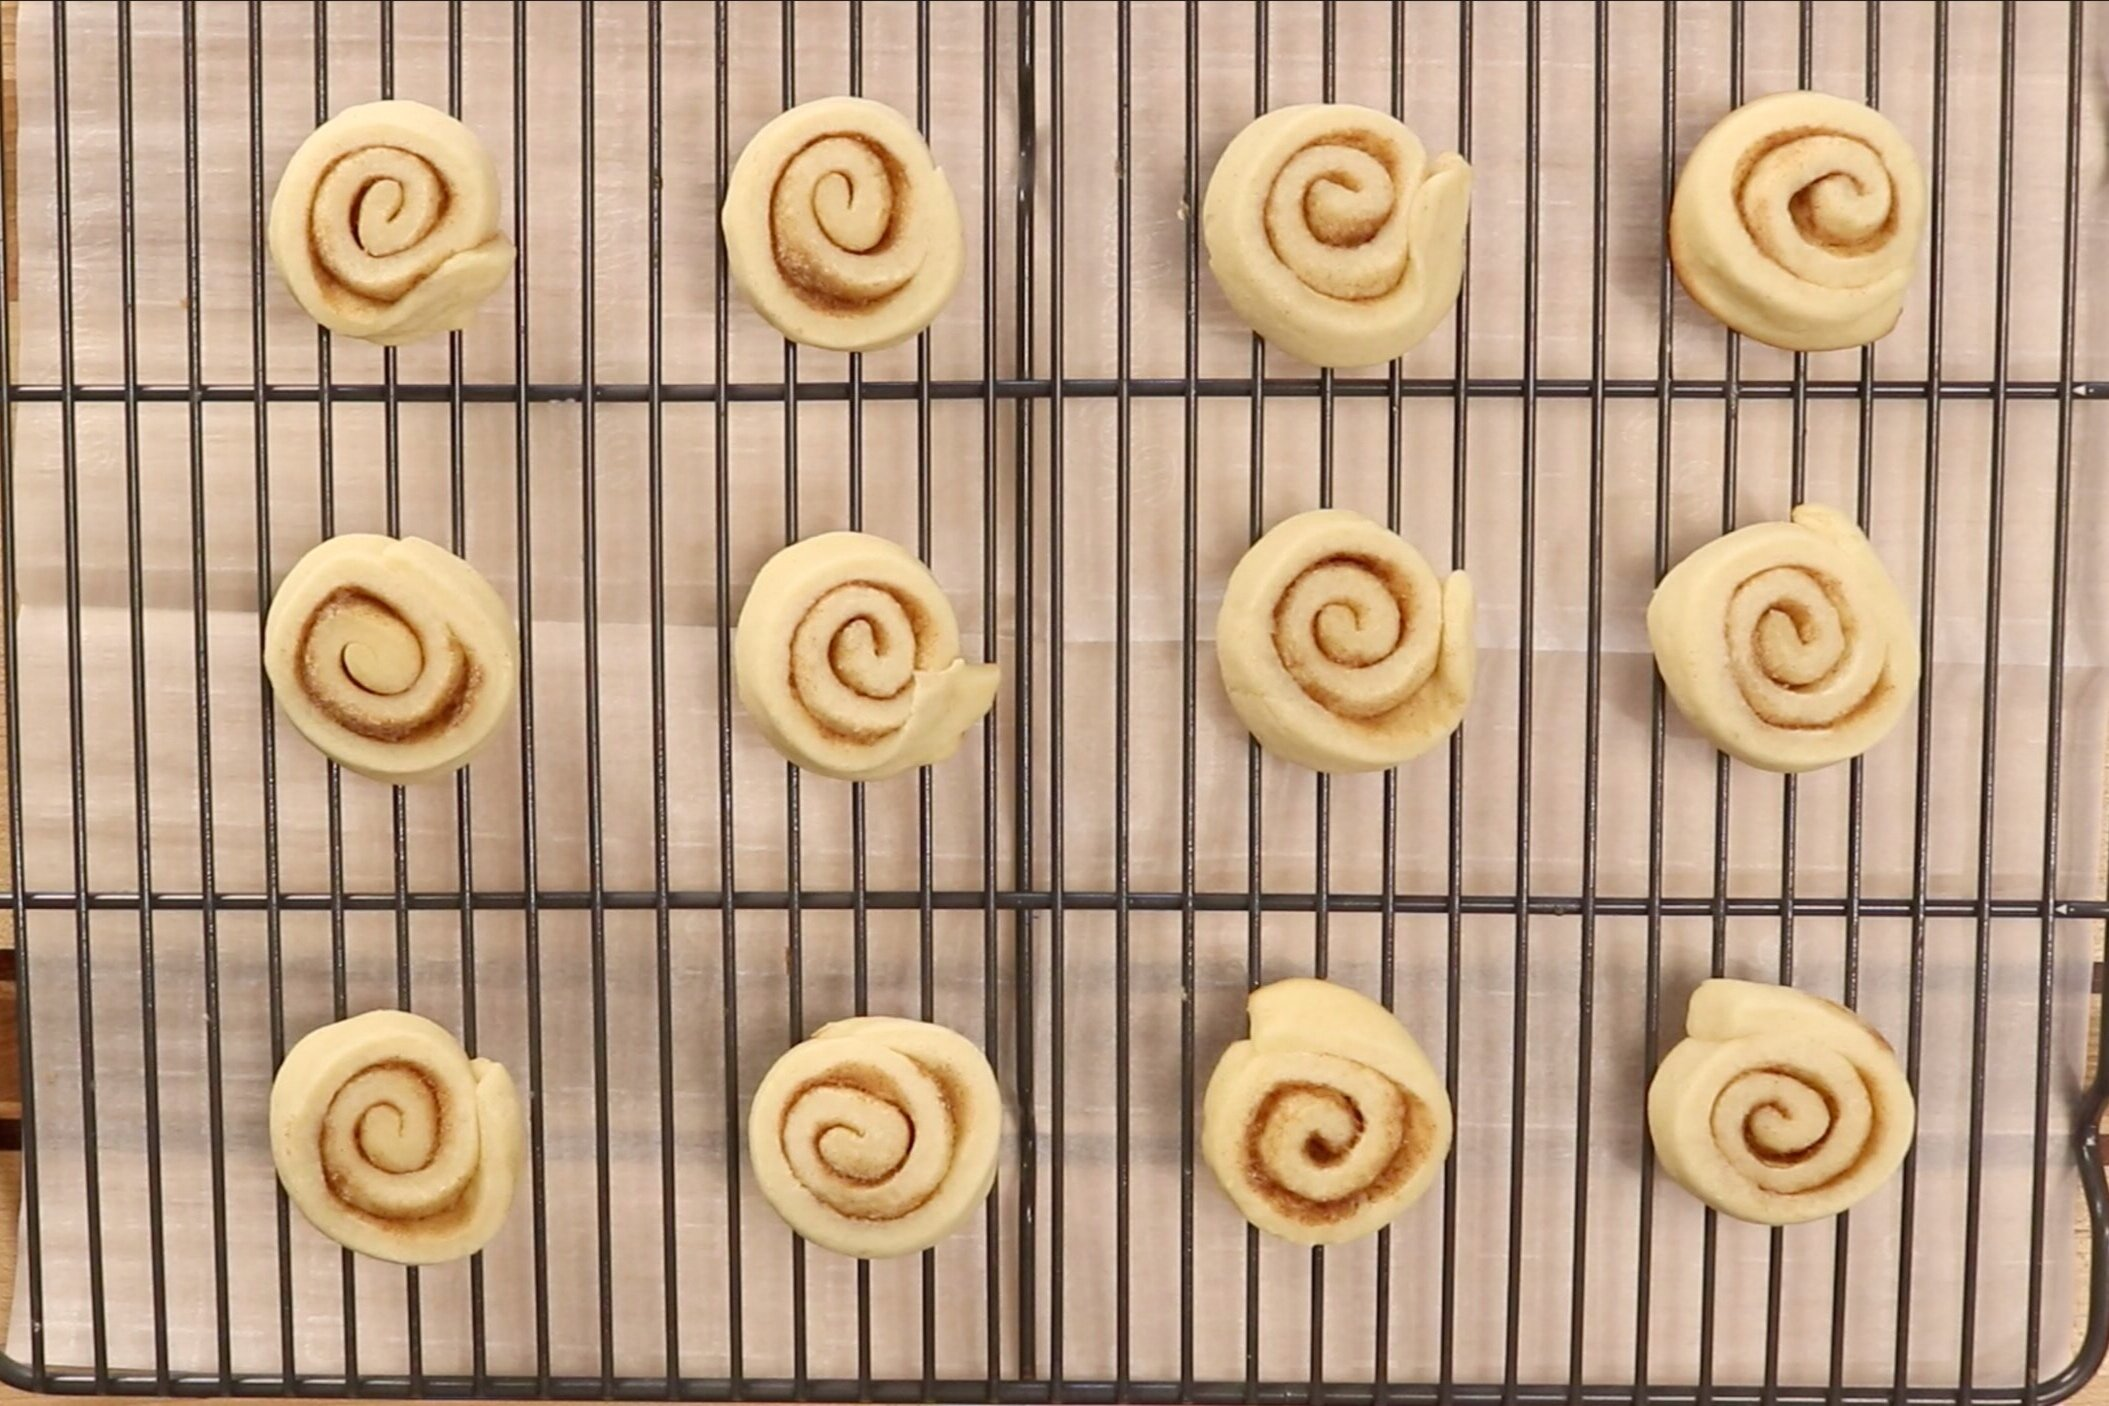 15. Remove from oven and cool on wire rack completely before icing. -